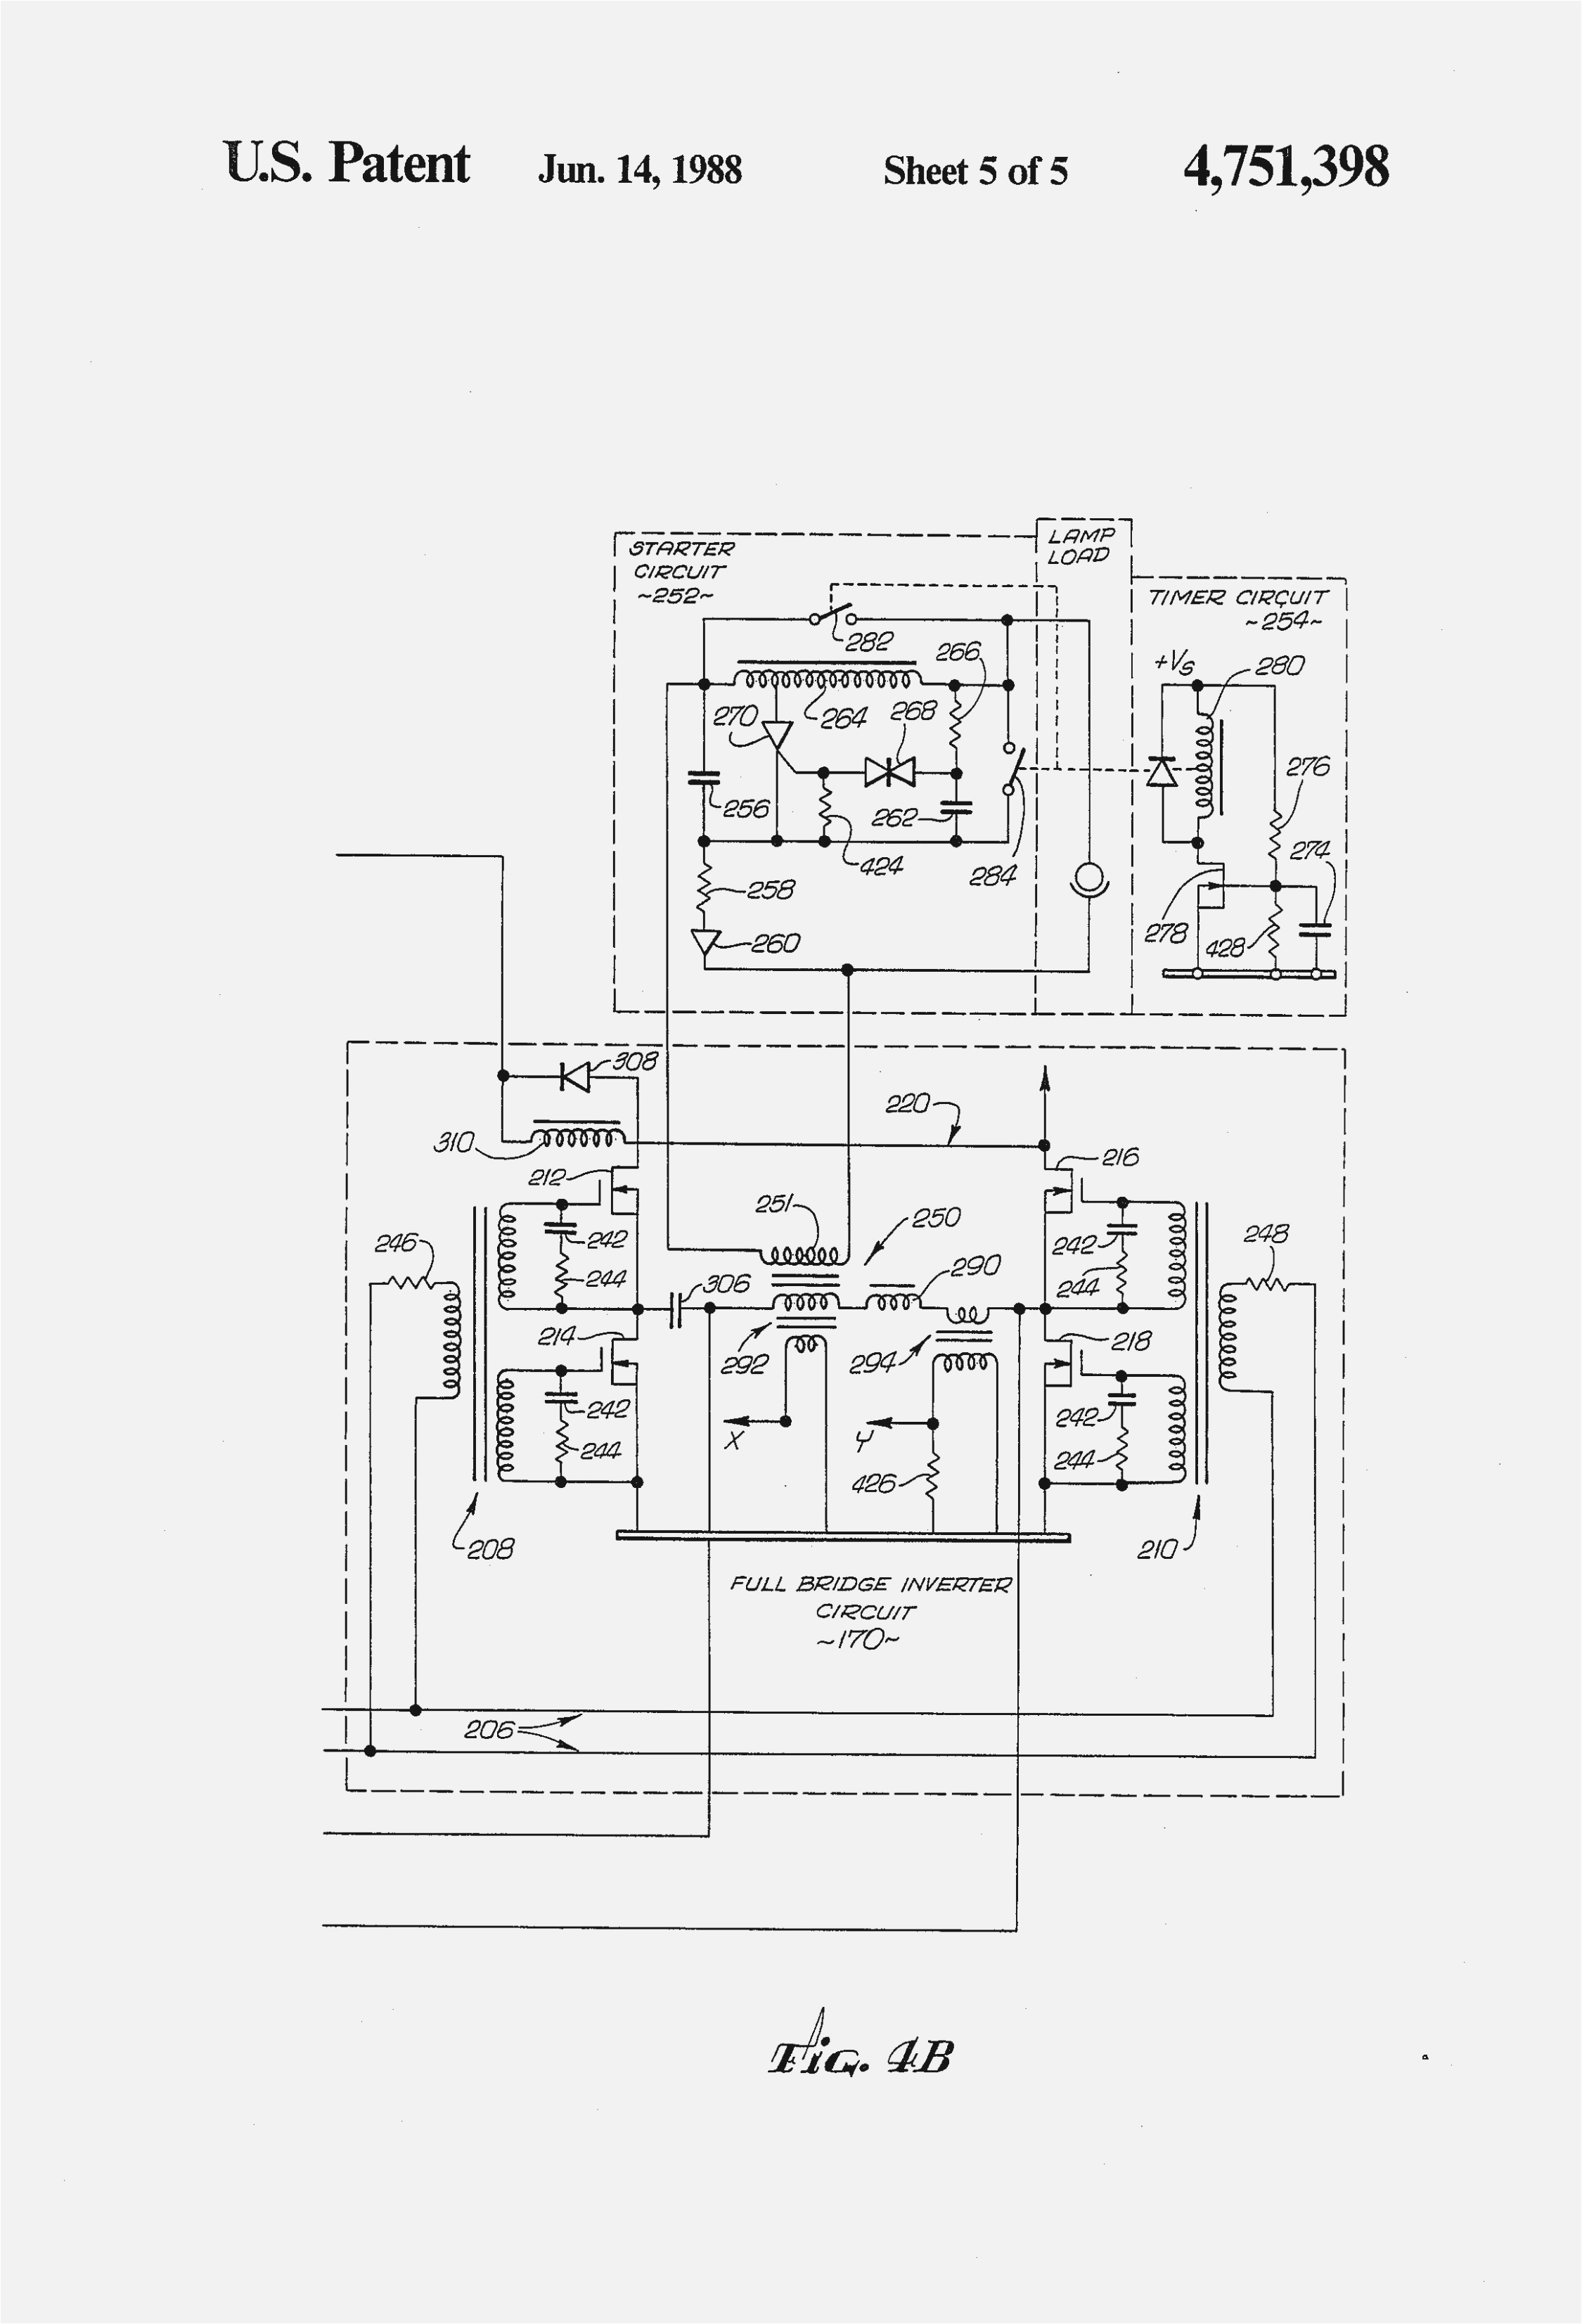 power sentry ps1400 wire diagram wiring diagramsentry 800 wiring diagram wiring diagram amesentry 800 wiring diagram